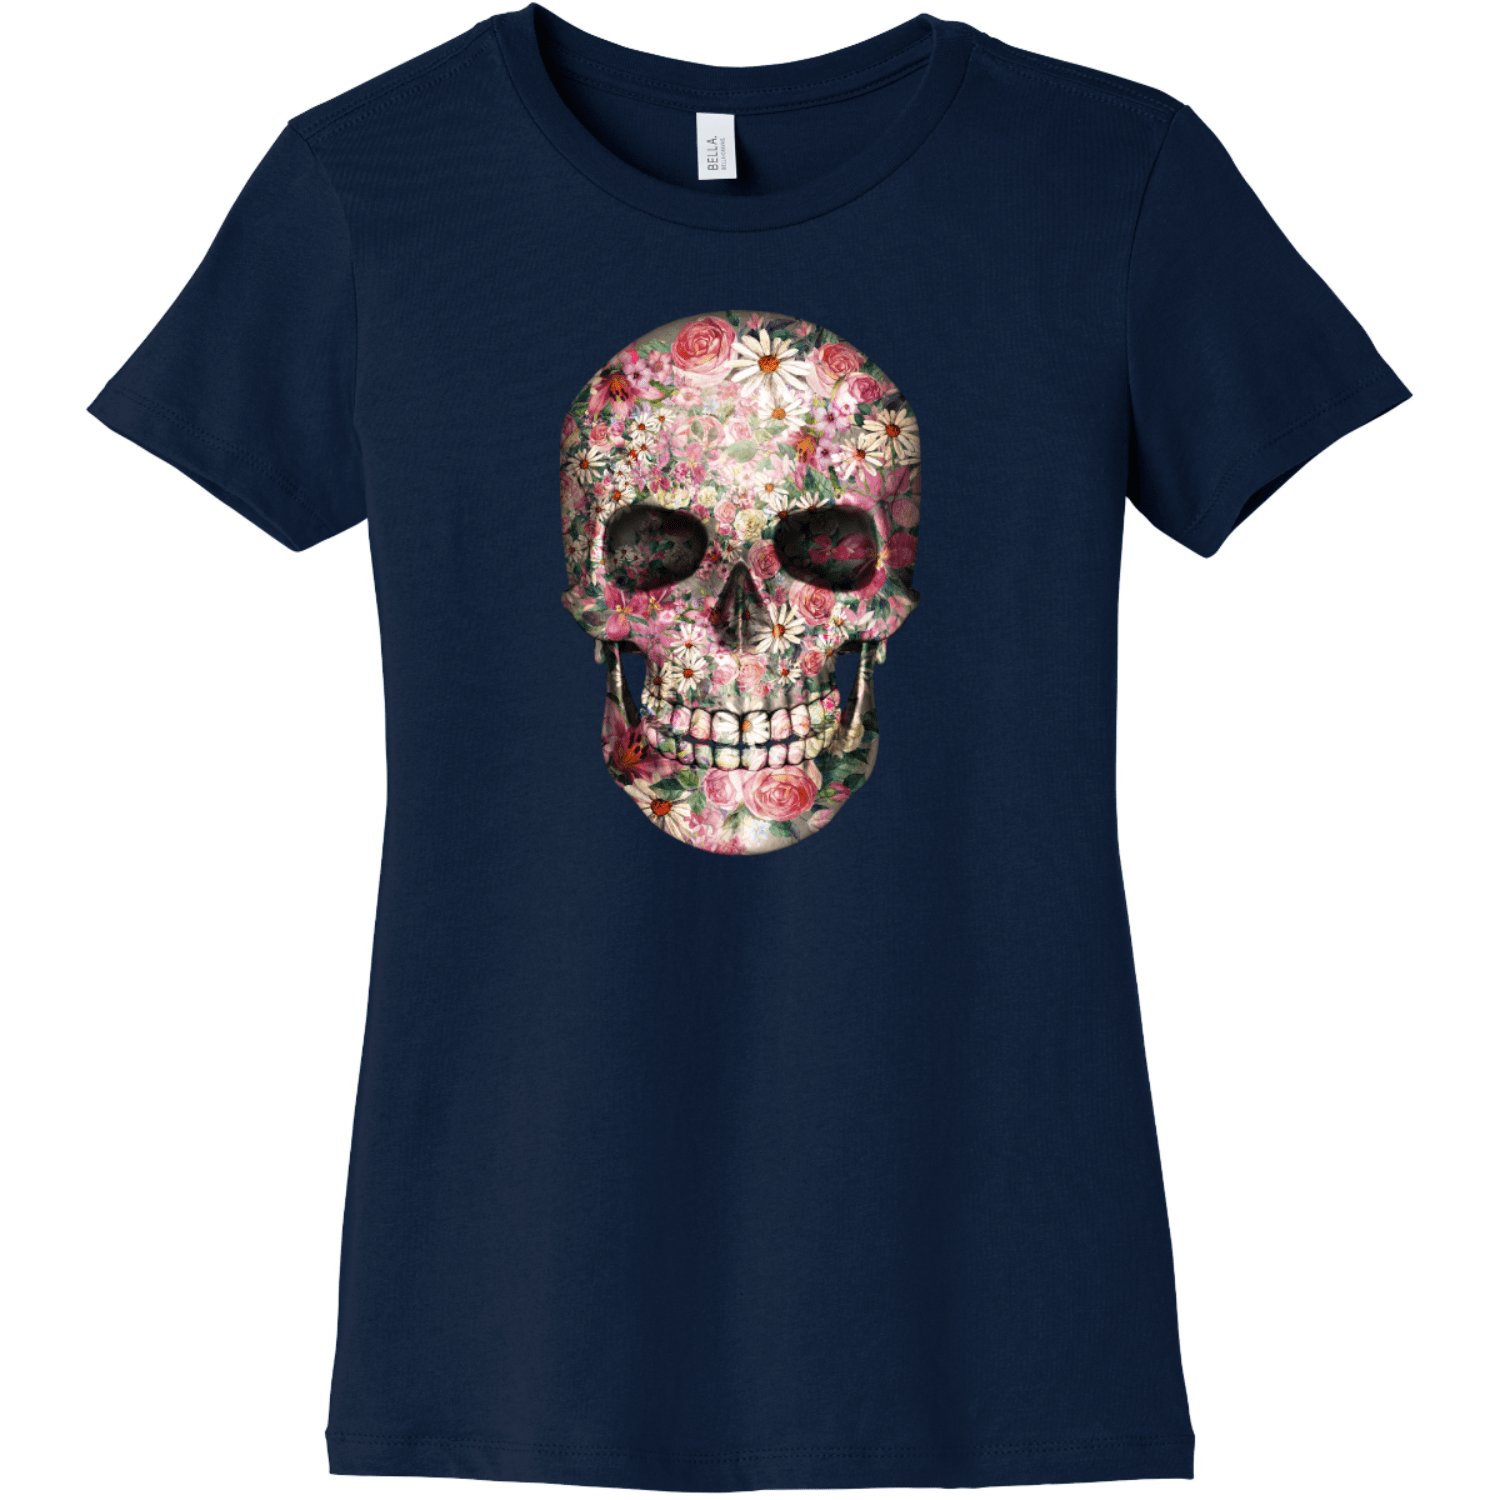 Floral Skull T Shirt For Women Navy Bella Canvas 6004 Ladies The Favorite Tee